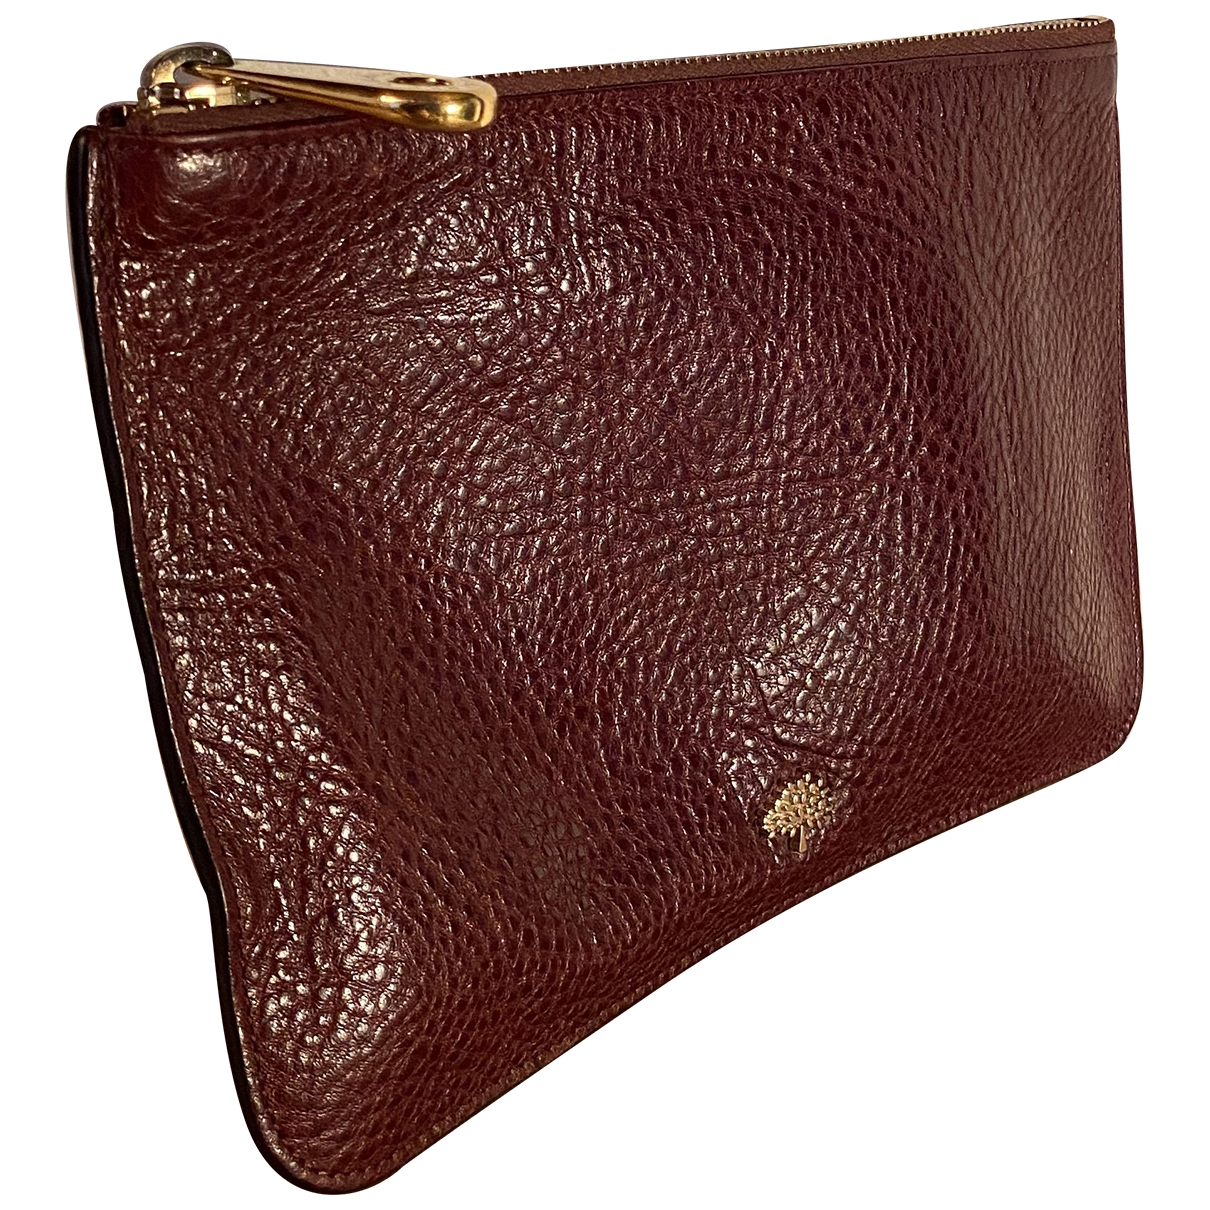 Mulberry \N Burgundy Leather Clutch bag for Women \N